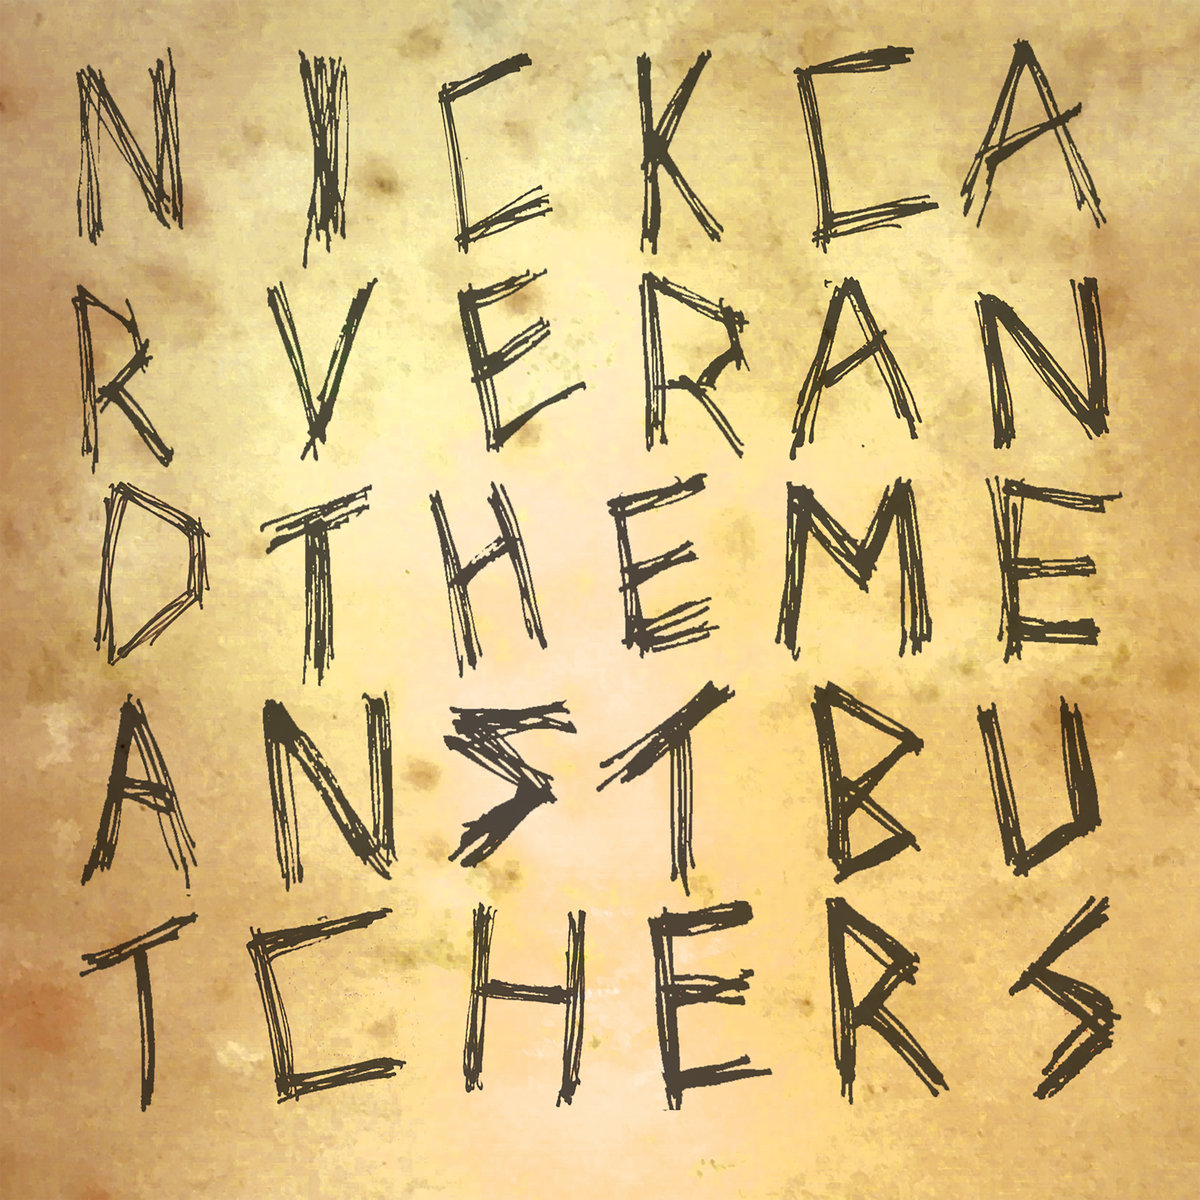 Nick Carver and the Mean Street Butchers